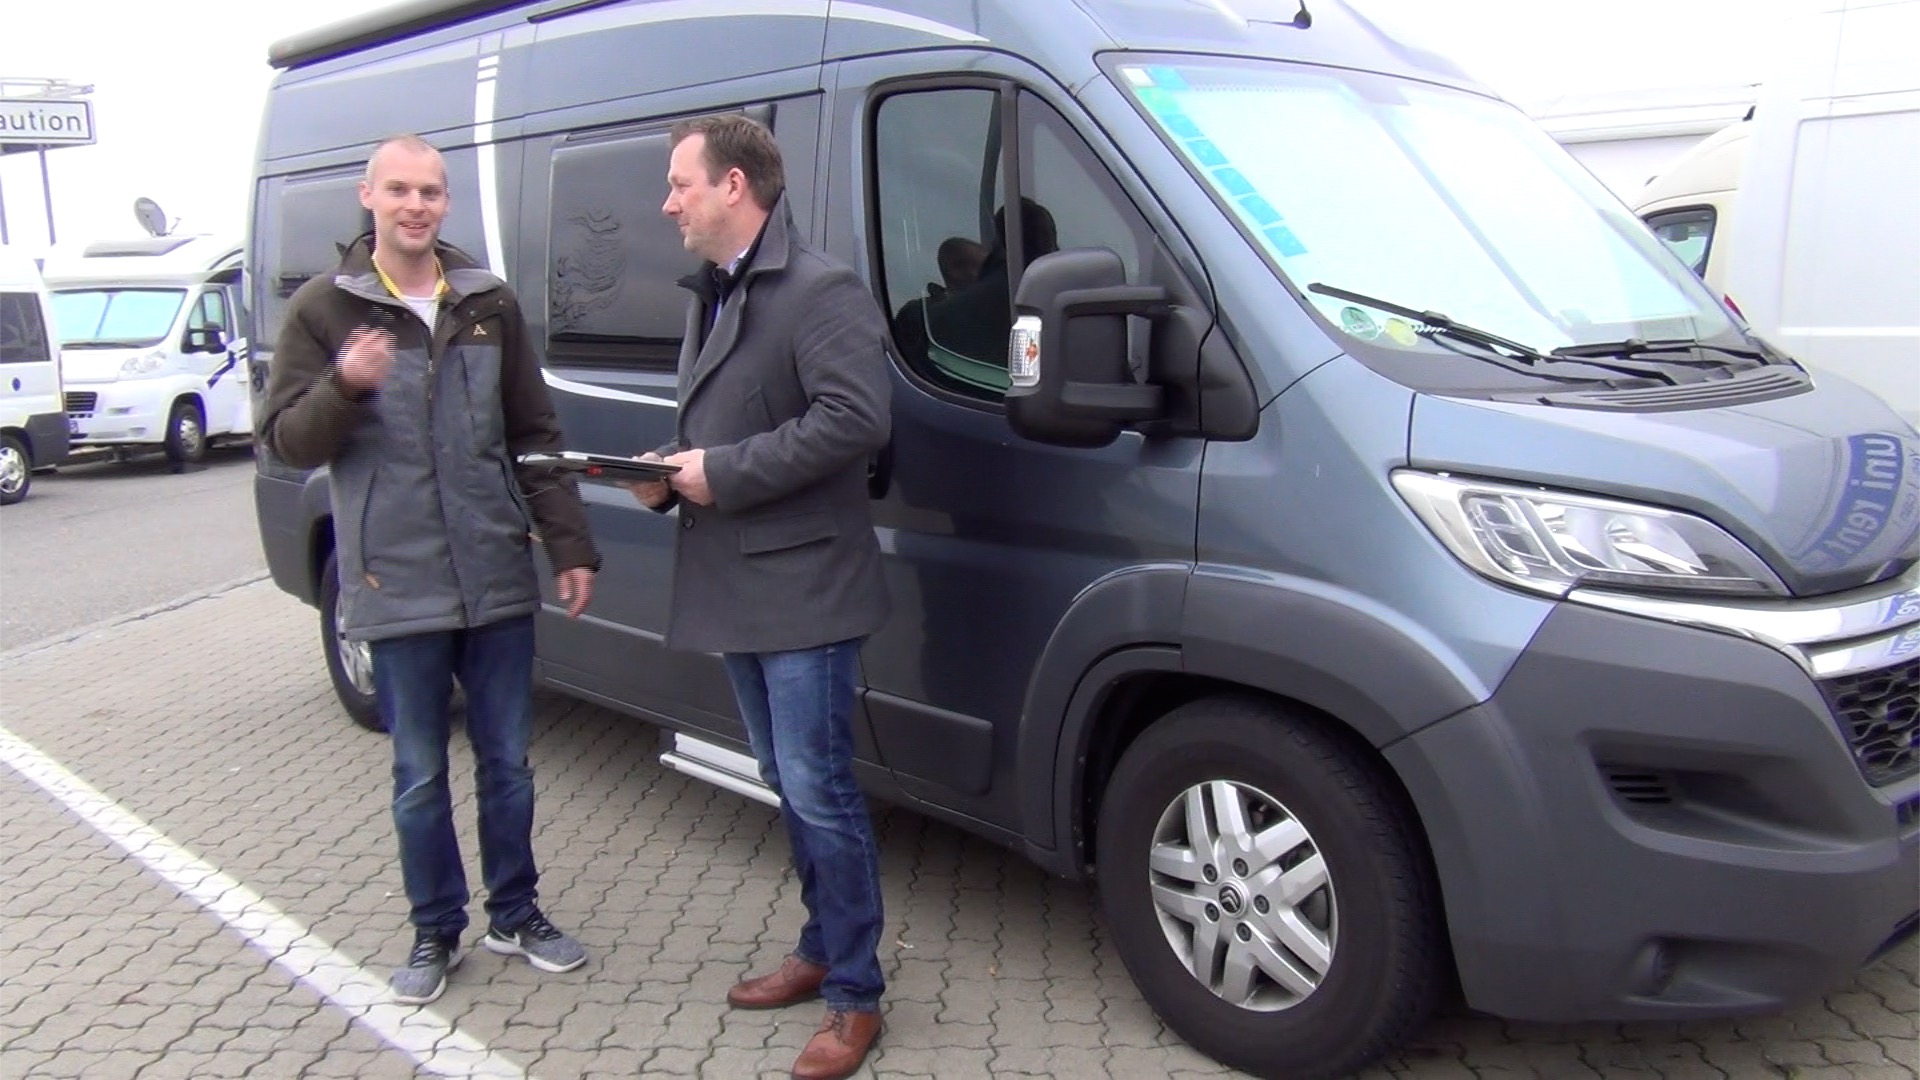 replay attacke auf wohnmobil wie man sich vor wohnmobildiebstahl sch tzen kann interview. Black Bedroom Furniture Sets. Home Design Ideas